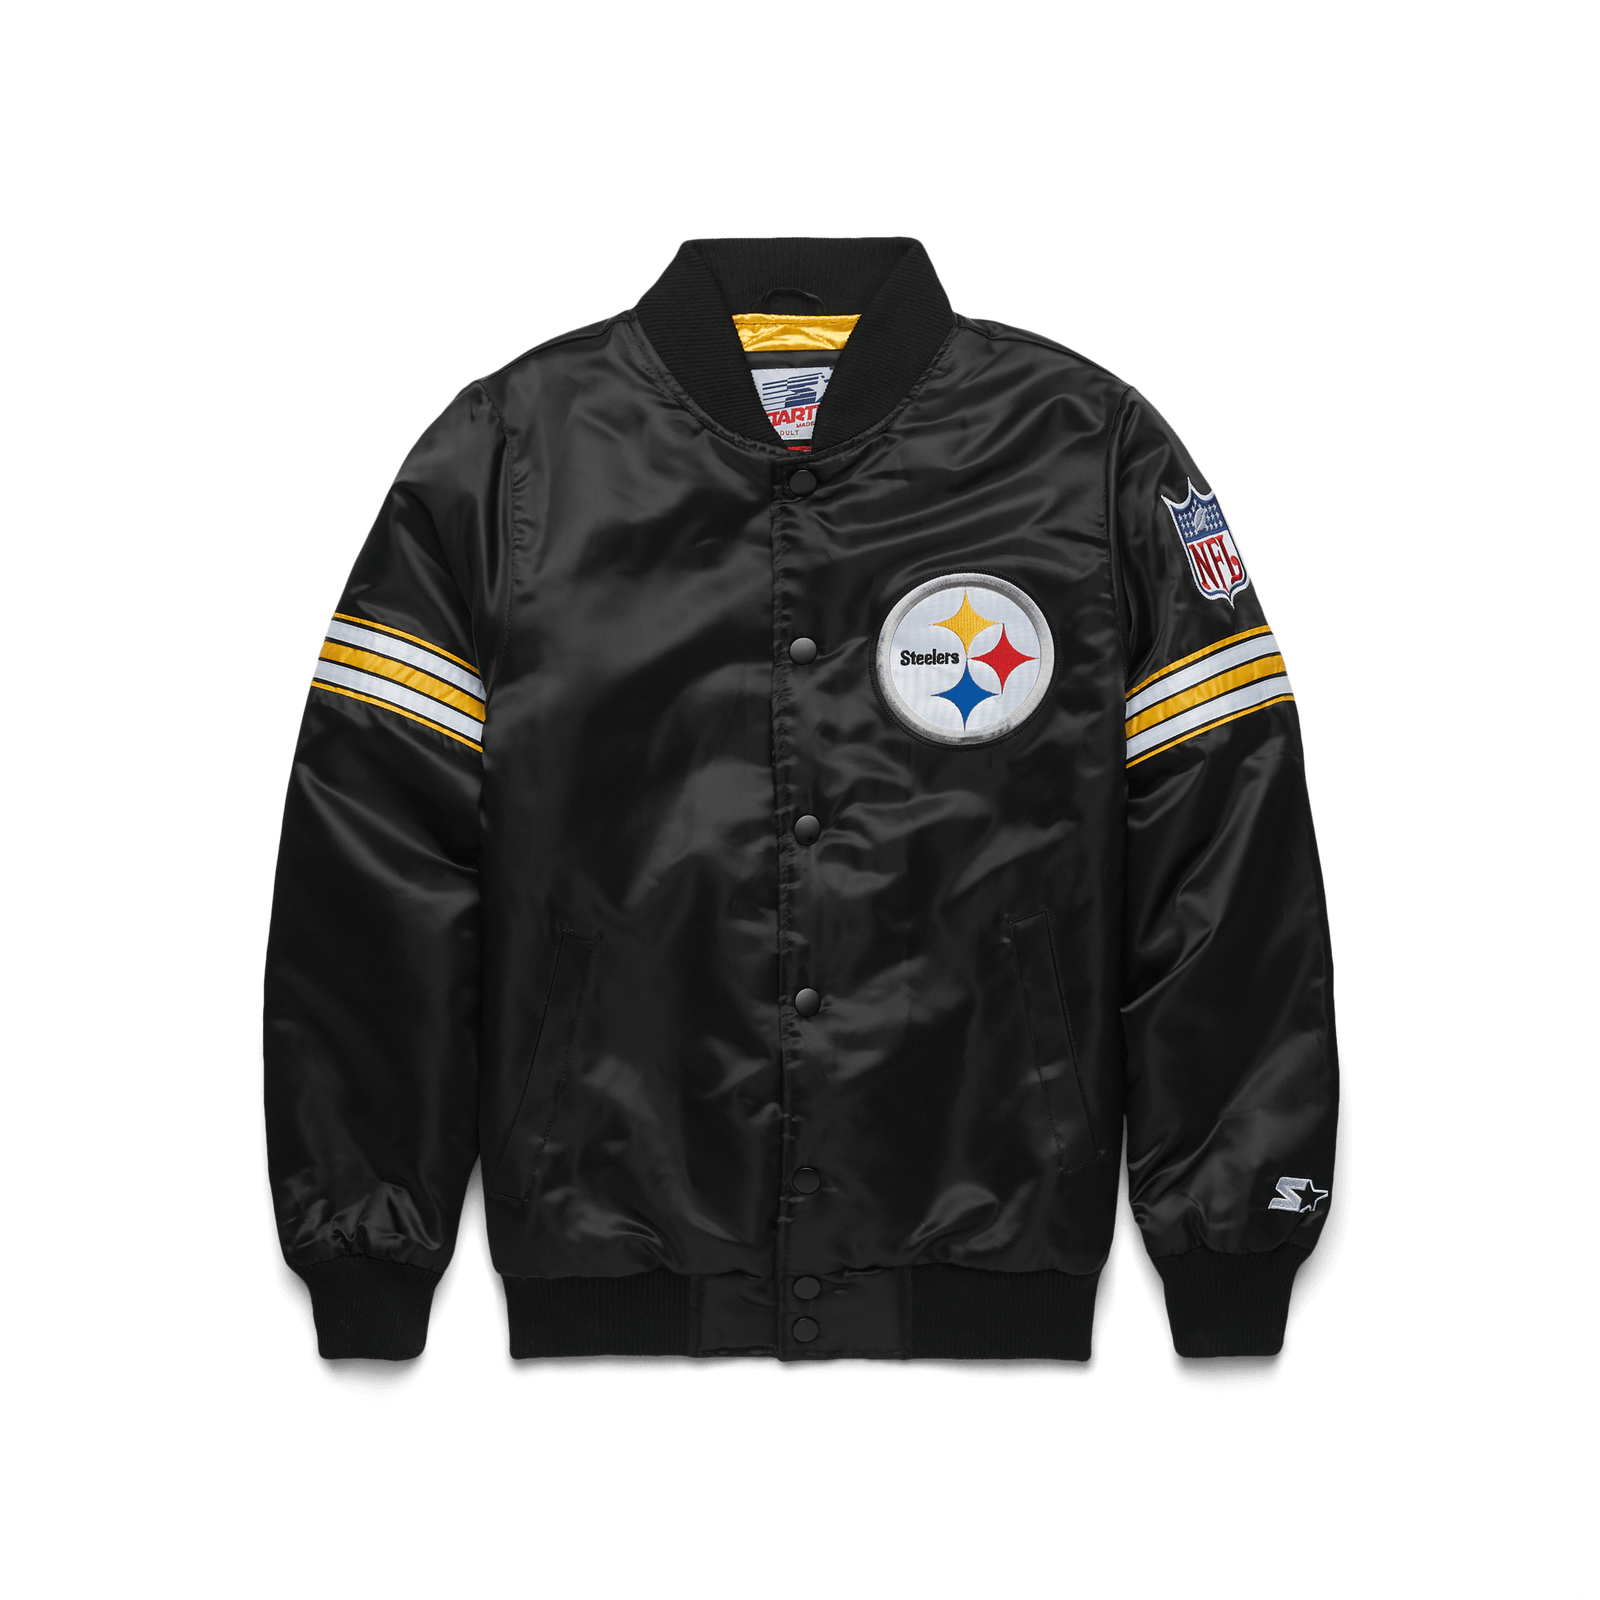 HOMAGE X Starter Steelers Gameday Jacket